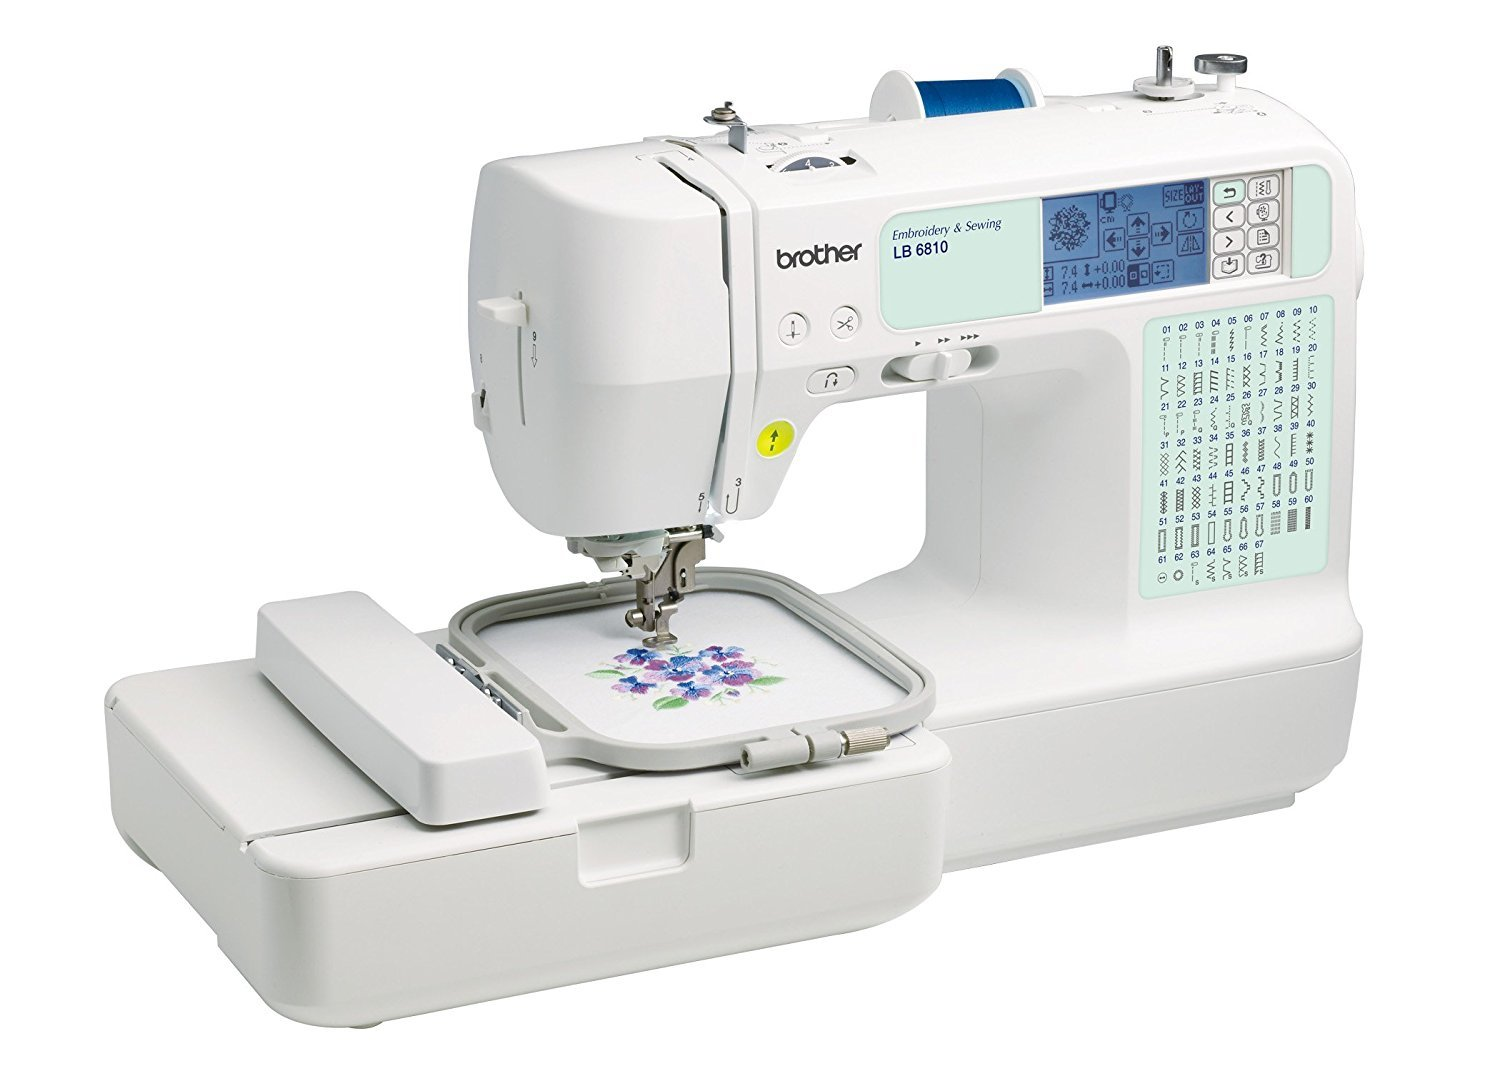 Brother LB6810 Sewing Quilting & Embroidery